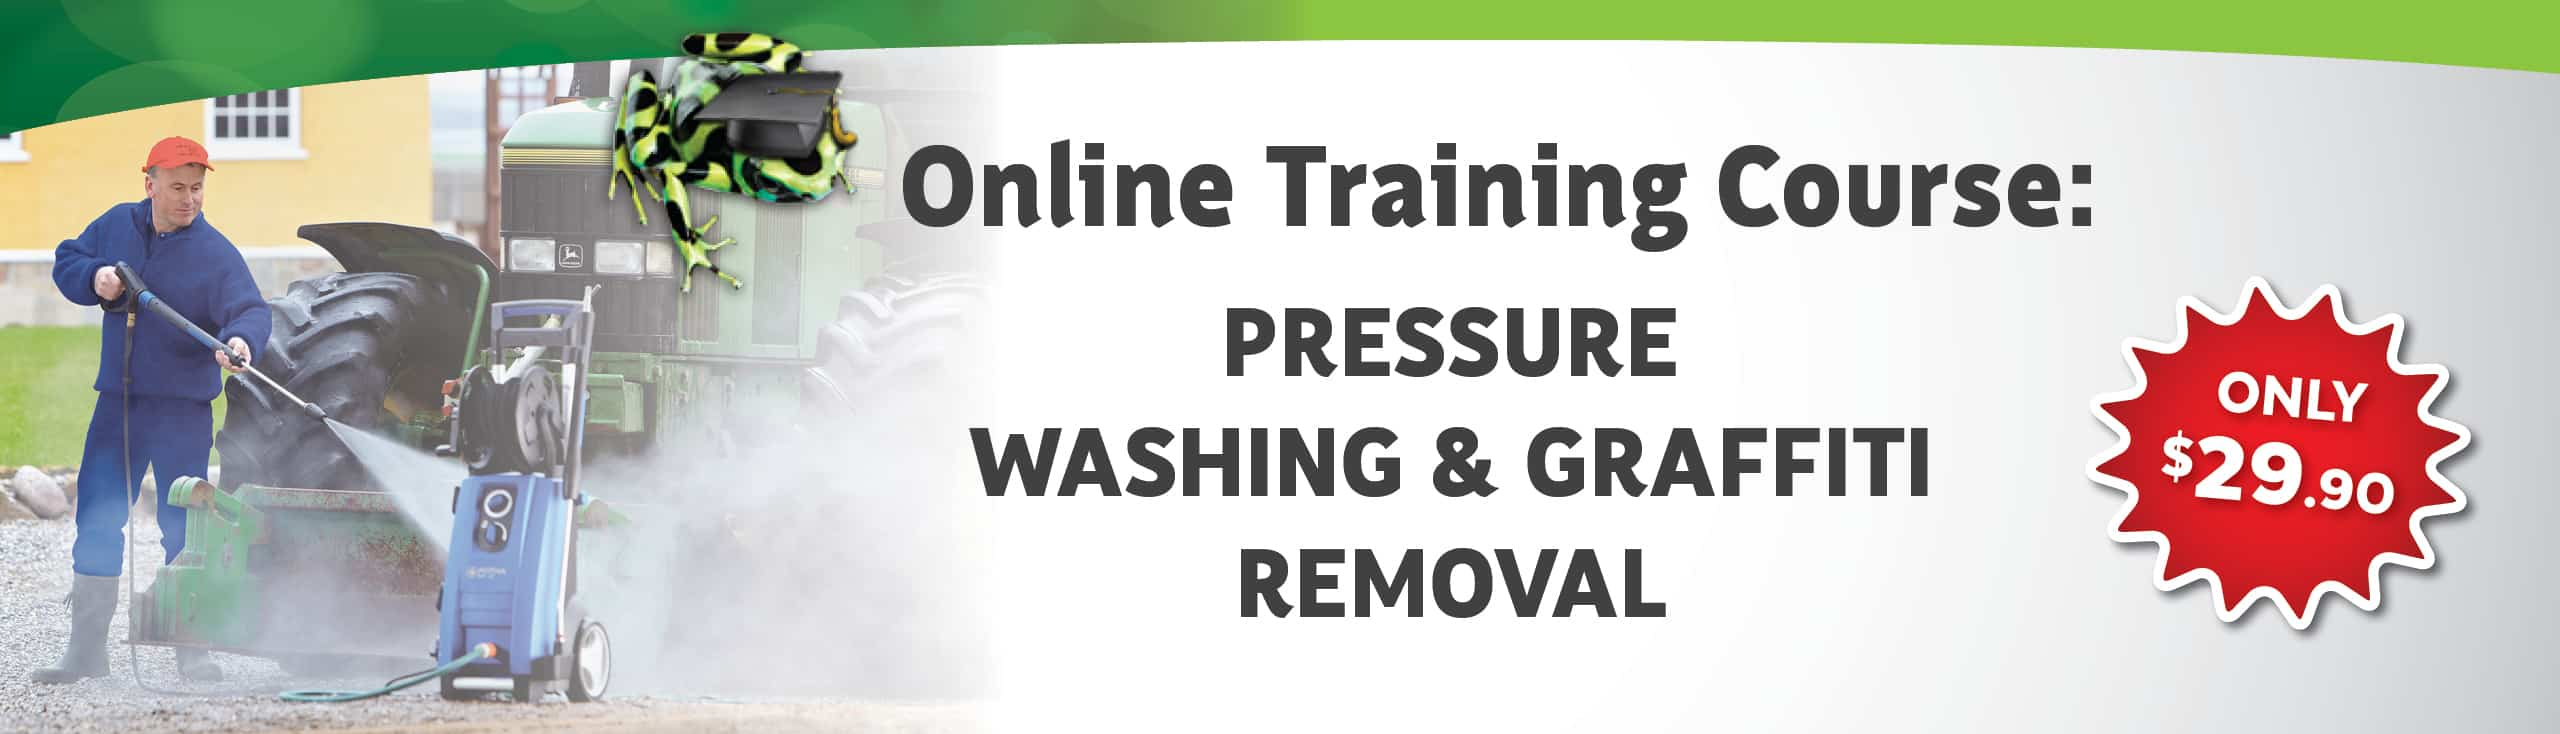 Pressure Washing & Graffiti Removal Course